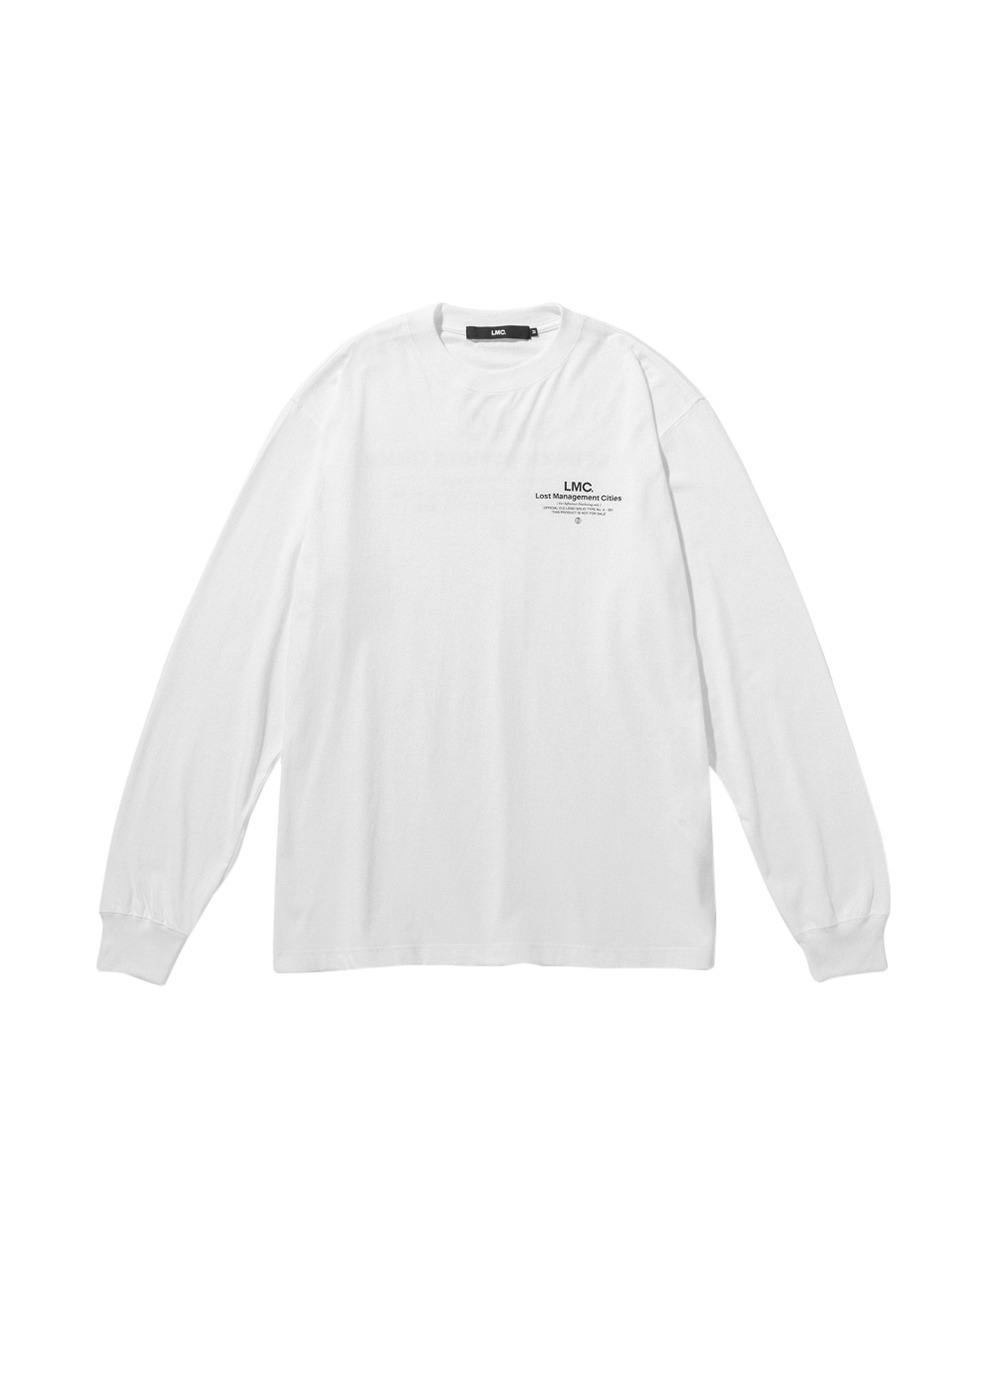 LMC INFLUENCER LONG SLV TEE white